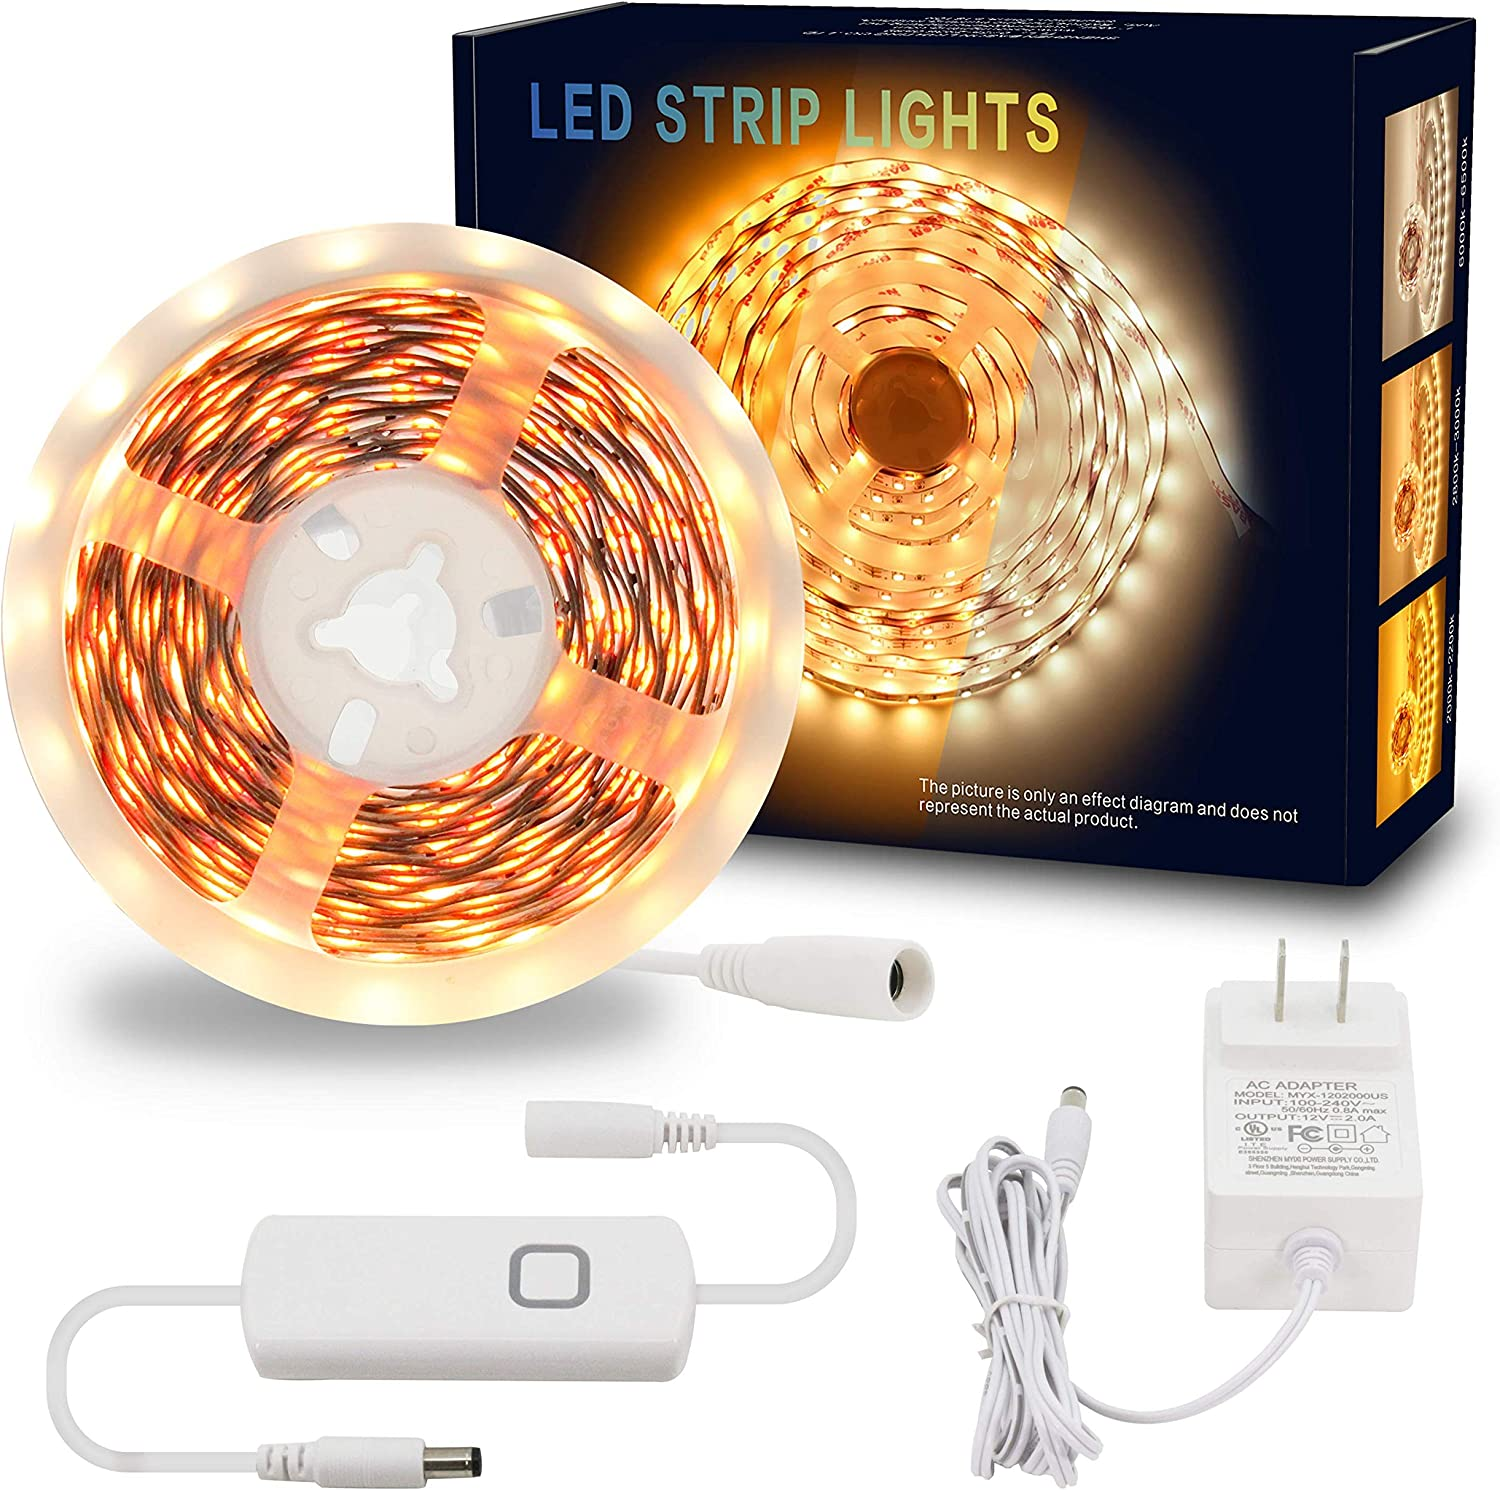 MYPLUS Dimmable LED Light Strip Kit, Flexible LED Tape Light with 12V UL Listed Power Supply and Warm White 3000K, 16.4 FT Under Cabinet Lighting for Kitchen, Room, Party